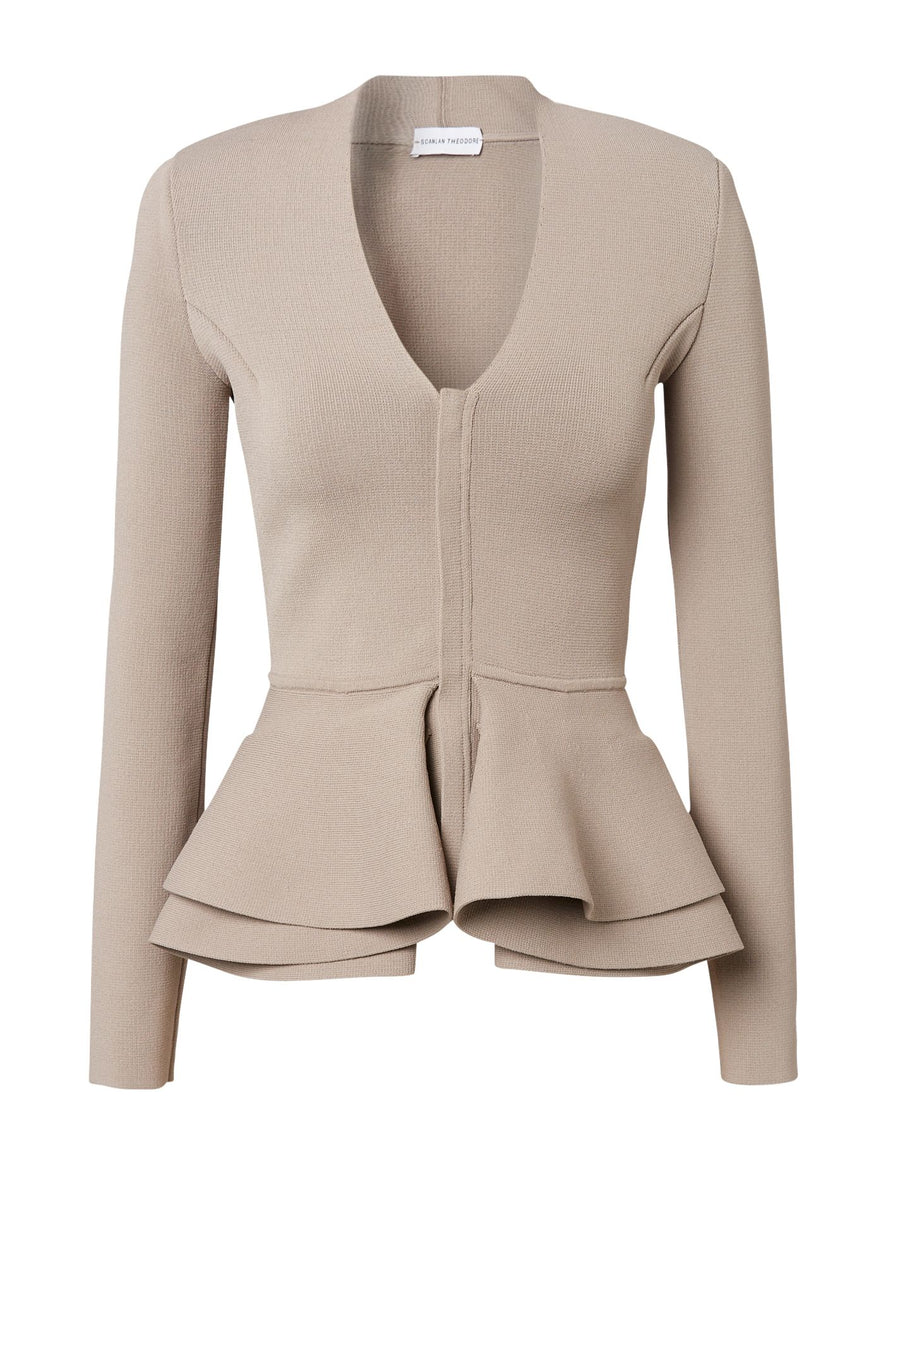 CREPE KNIT V-NECK RUFFLE PEPLUM JACKET, LONG SLEEVES, COLOR CLAY